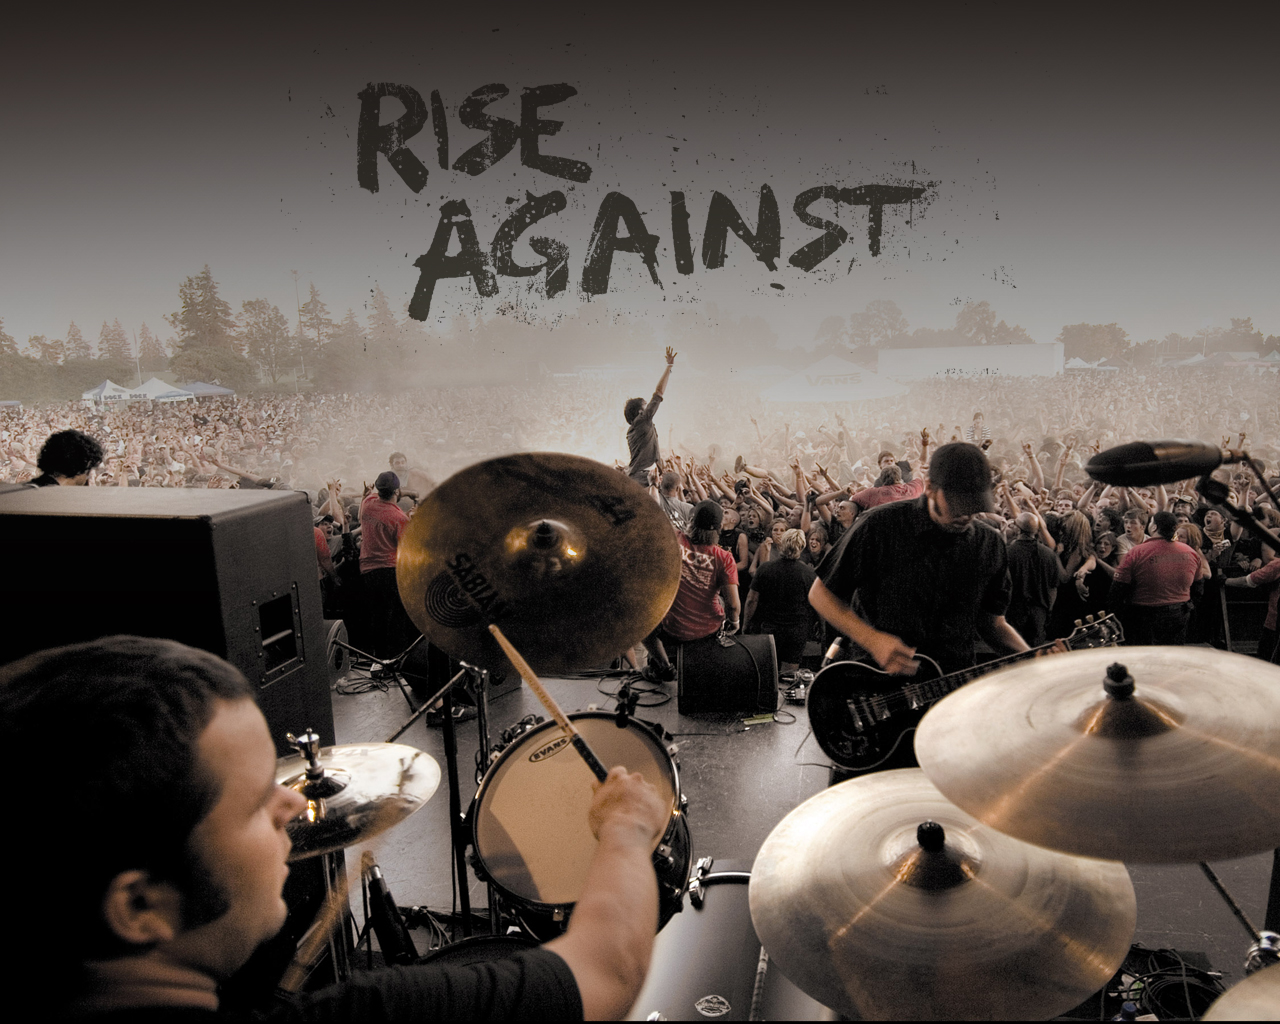 RISE AGAINST wallpaper ~ ALL ABOUT MUSIC